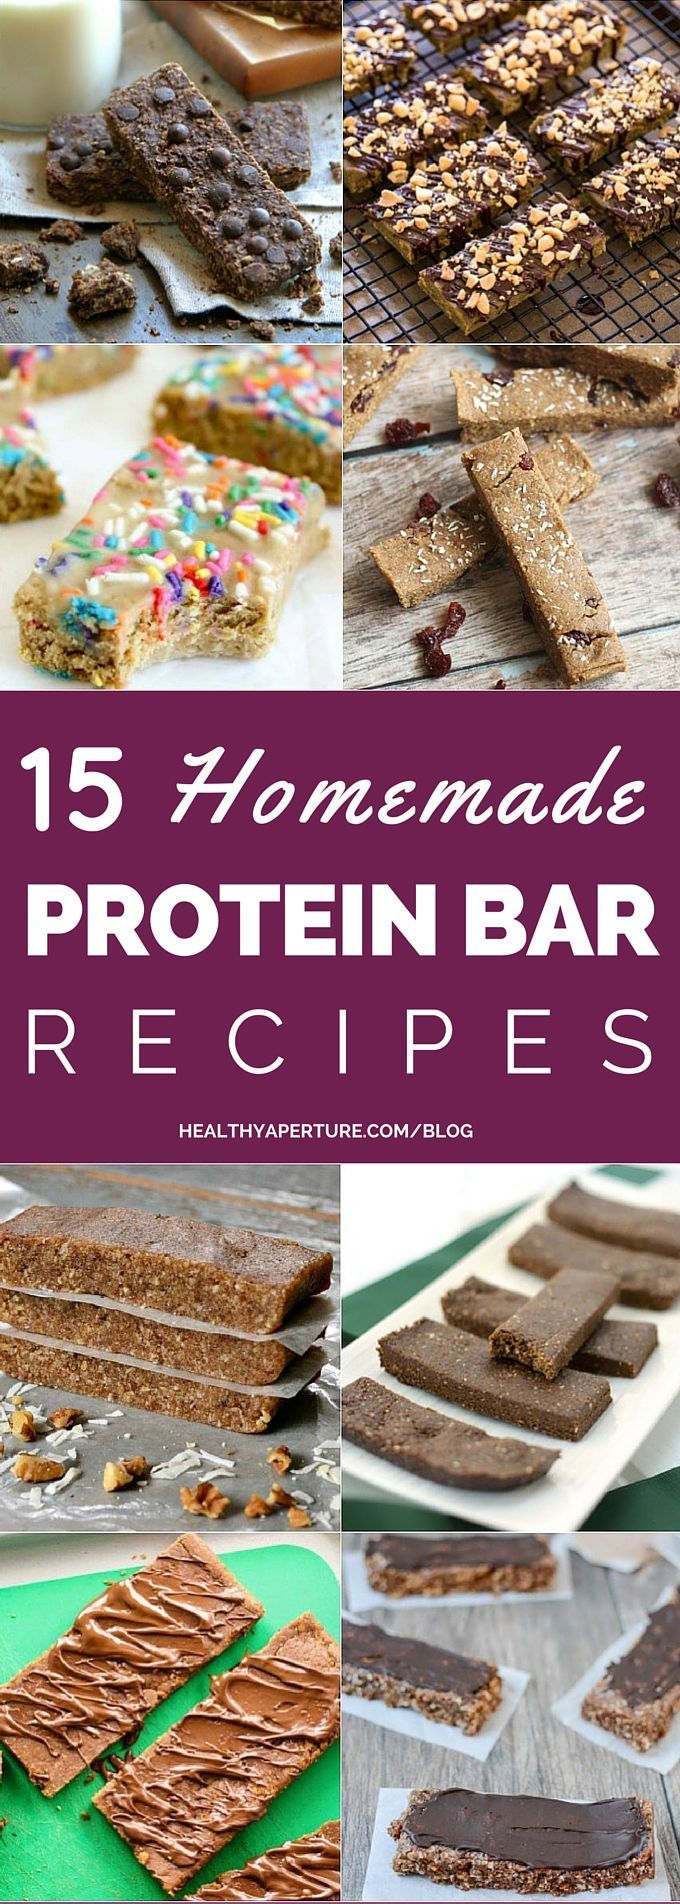 Skip the store-bought versions and make your own Healthy Homemade Protein Bars with these 15 easy recipes!